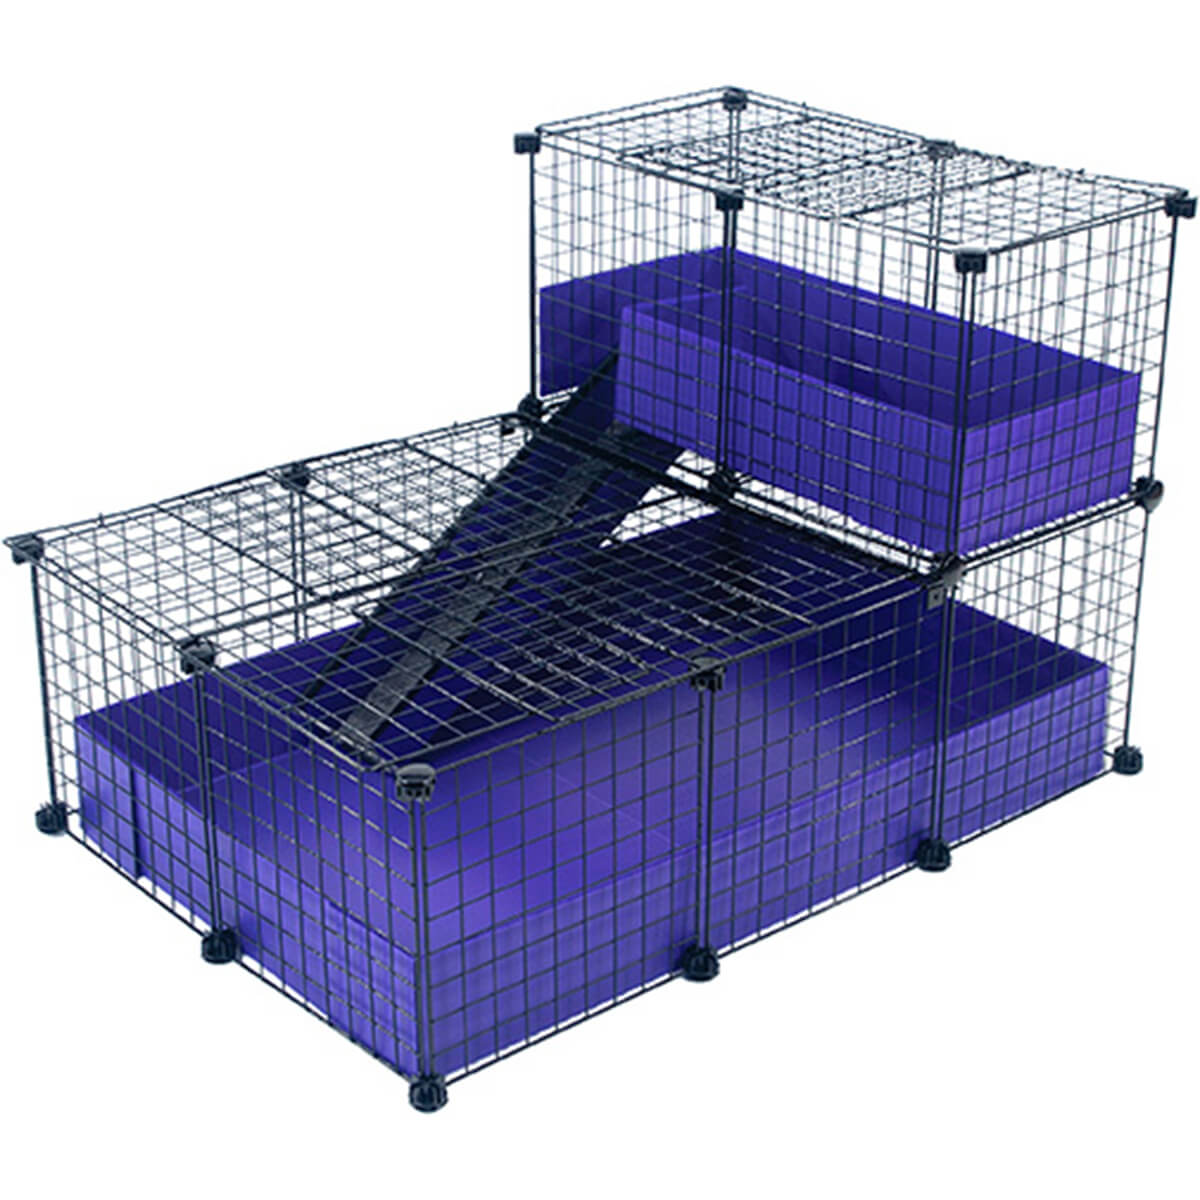 Small with narrow loft covered deluxe covered cages c for Guinea pig and cage for sale